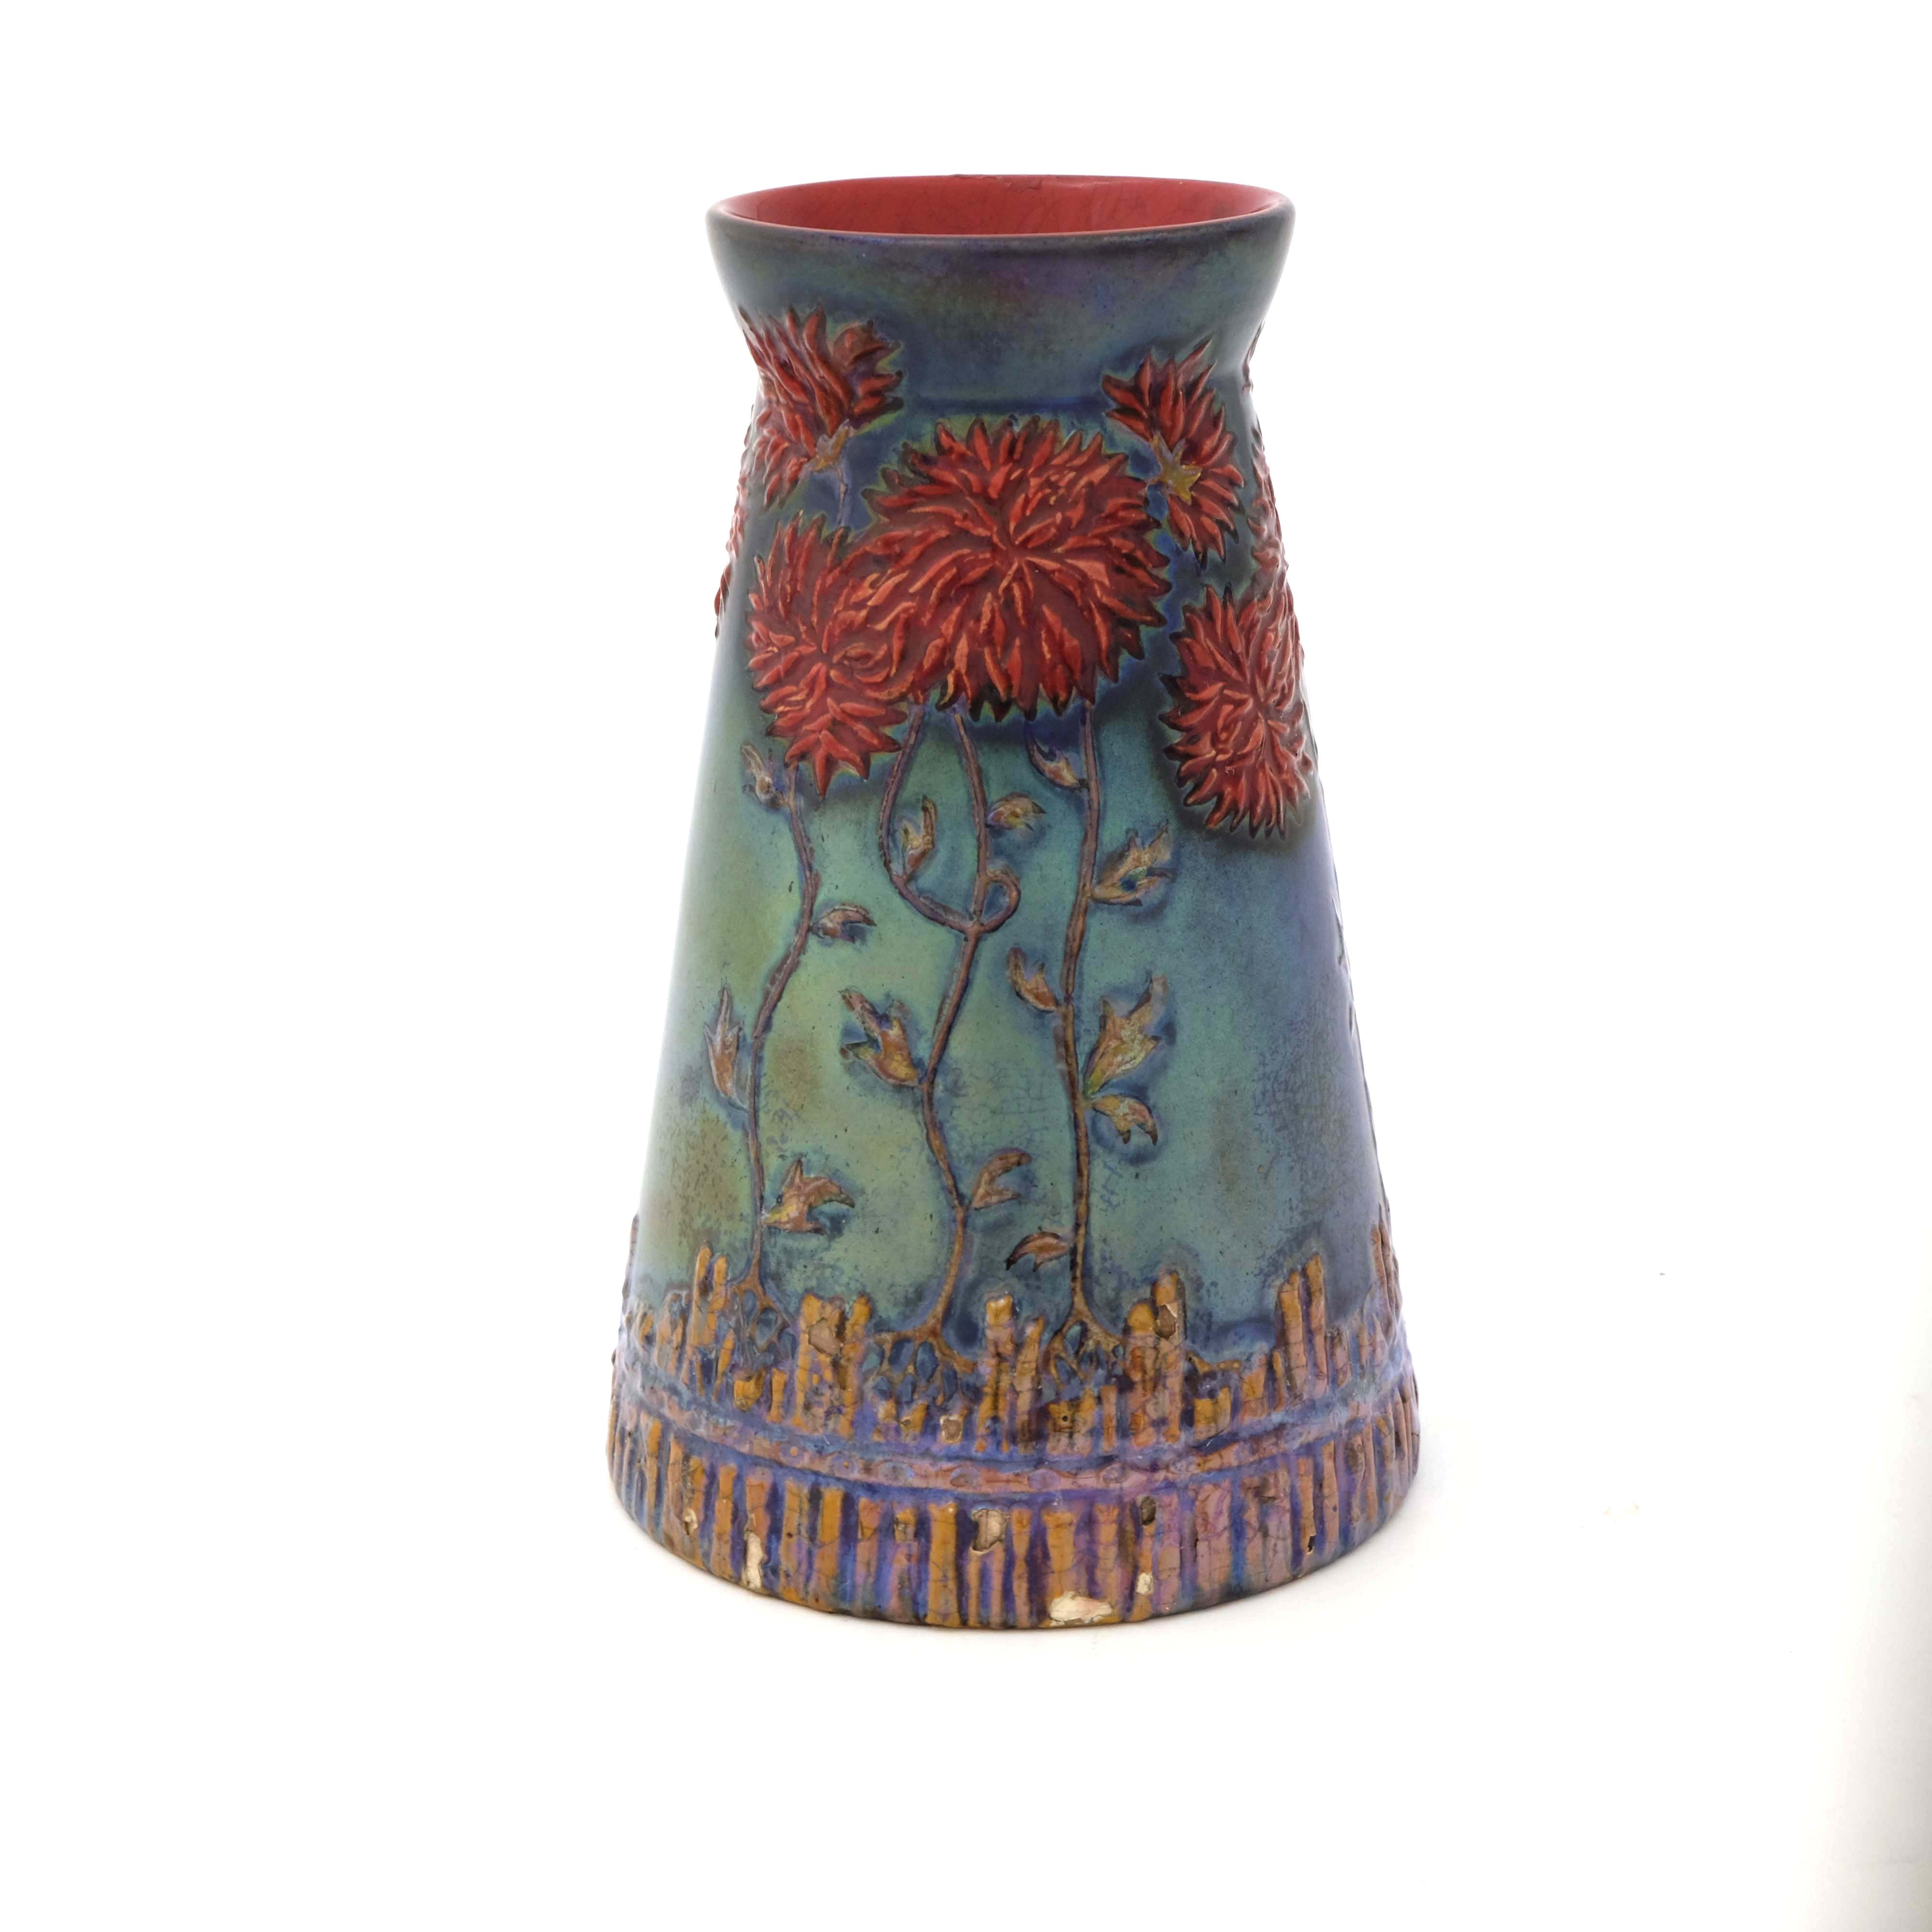 Zsolnay, Pecs, a lustre vase - Image 4 of 6